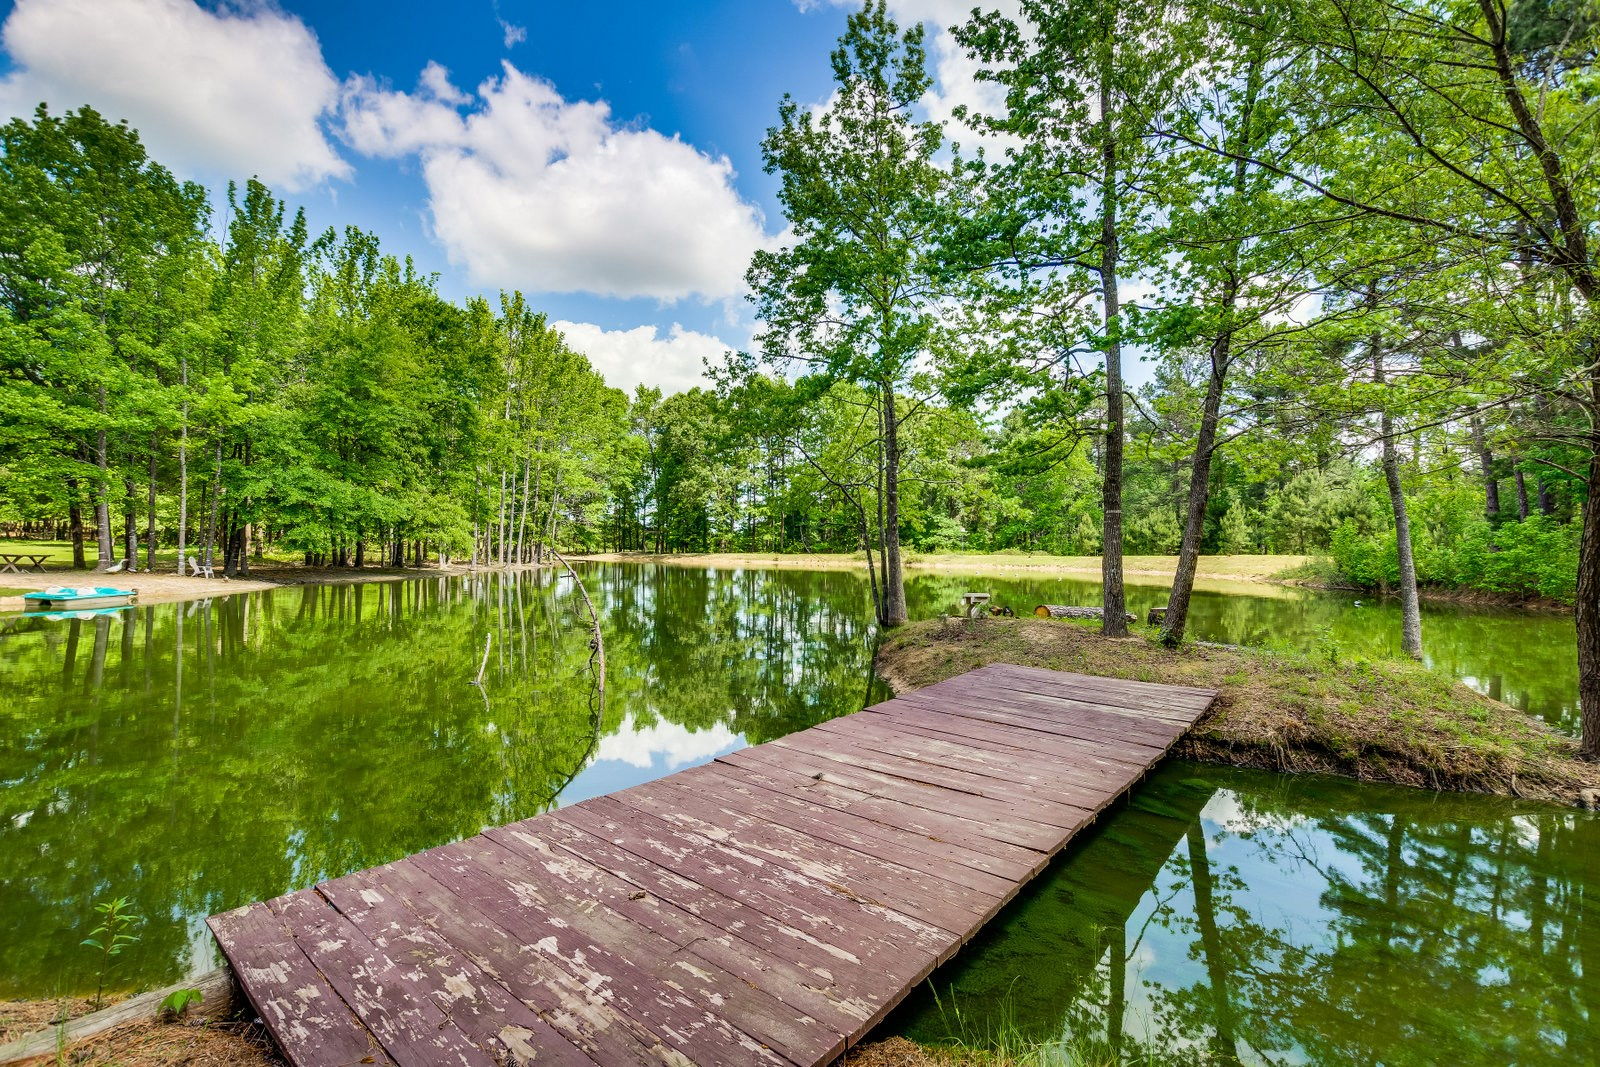 40 EAST TX ACRES - COUNTRY HOME - EQUINE - POND - GUEST APT